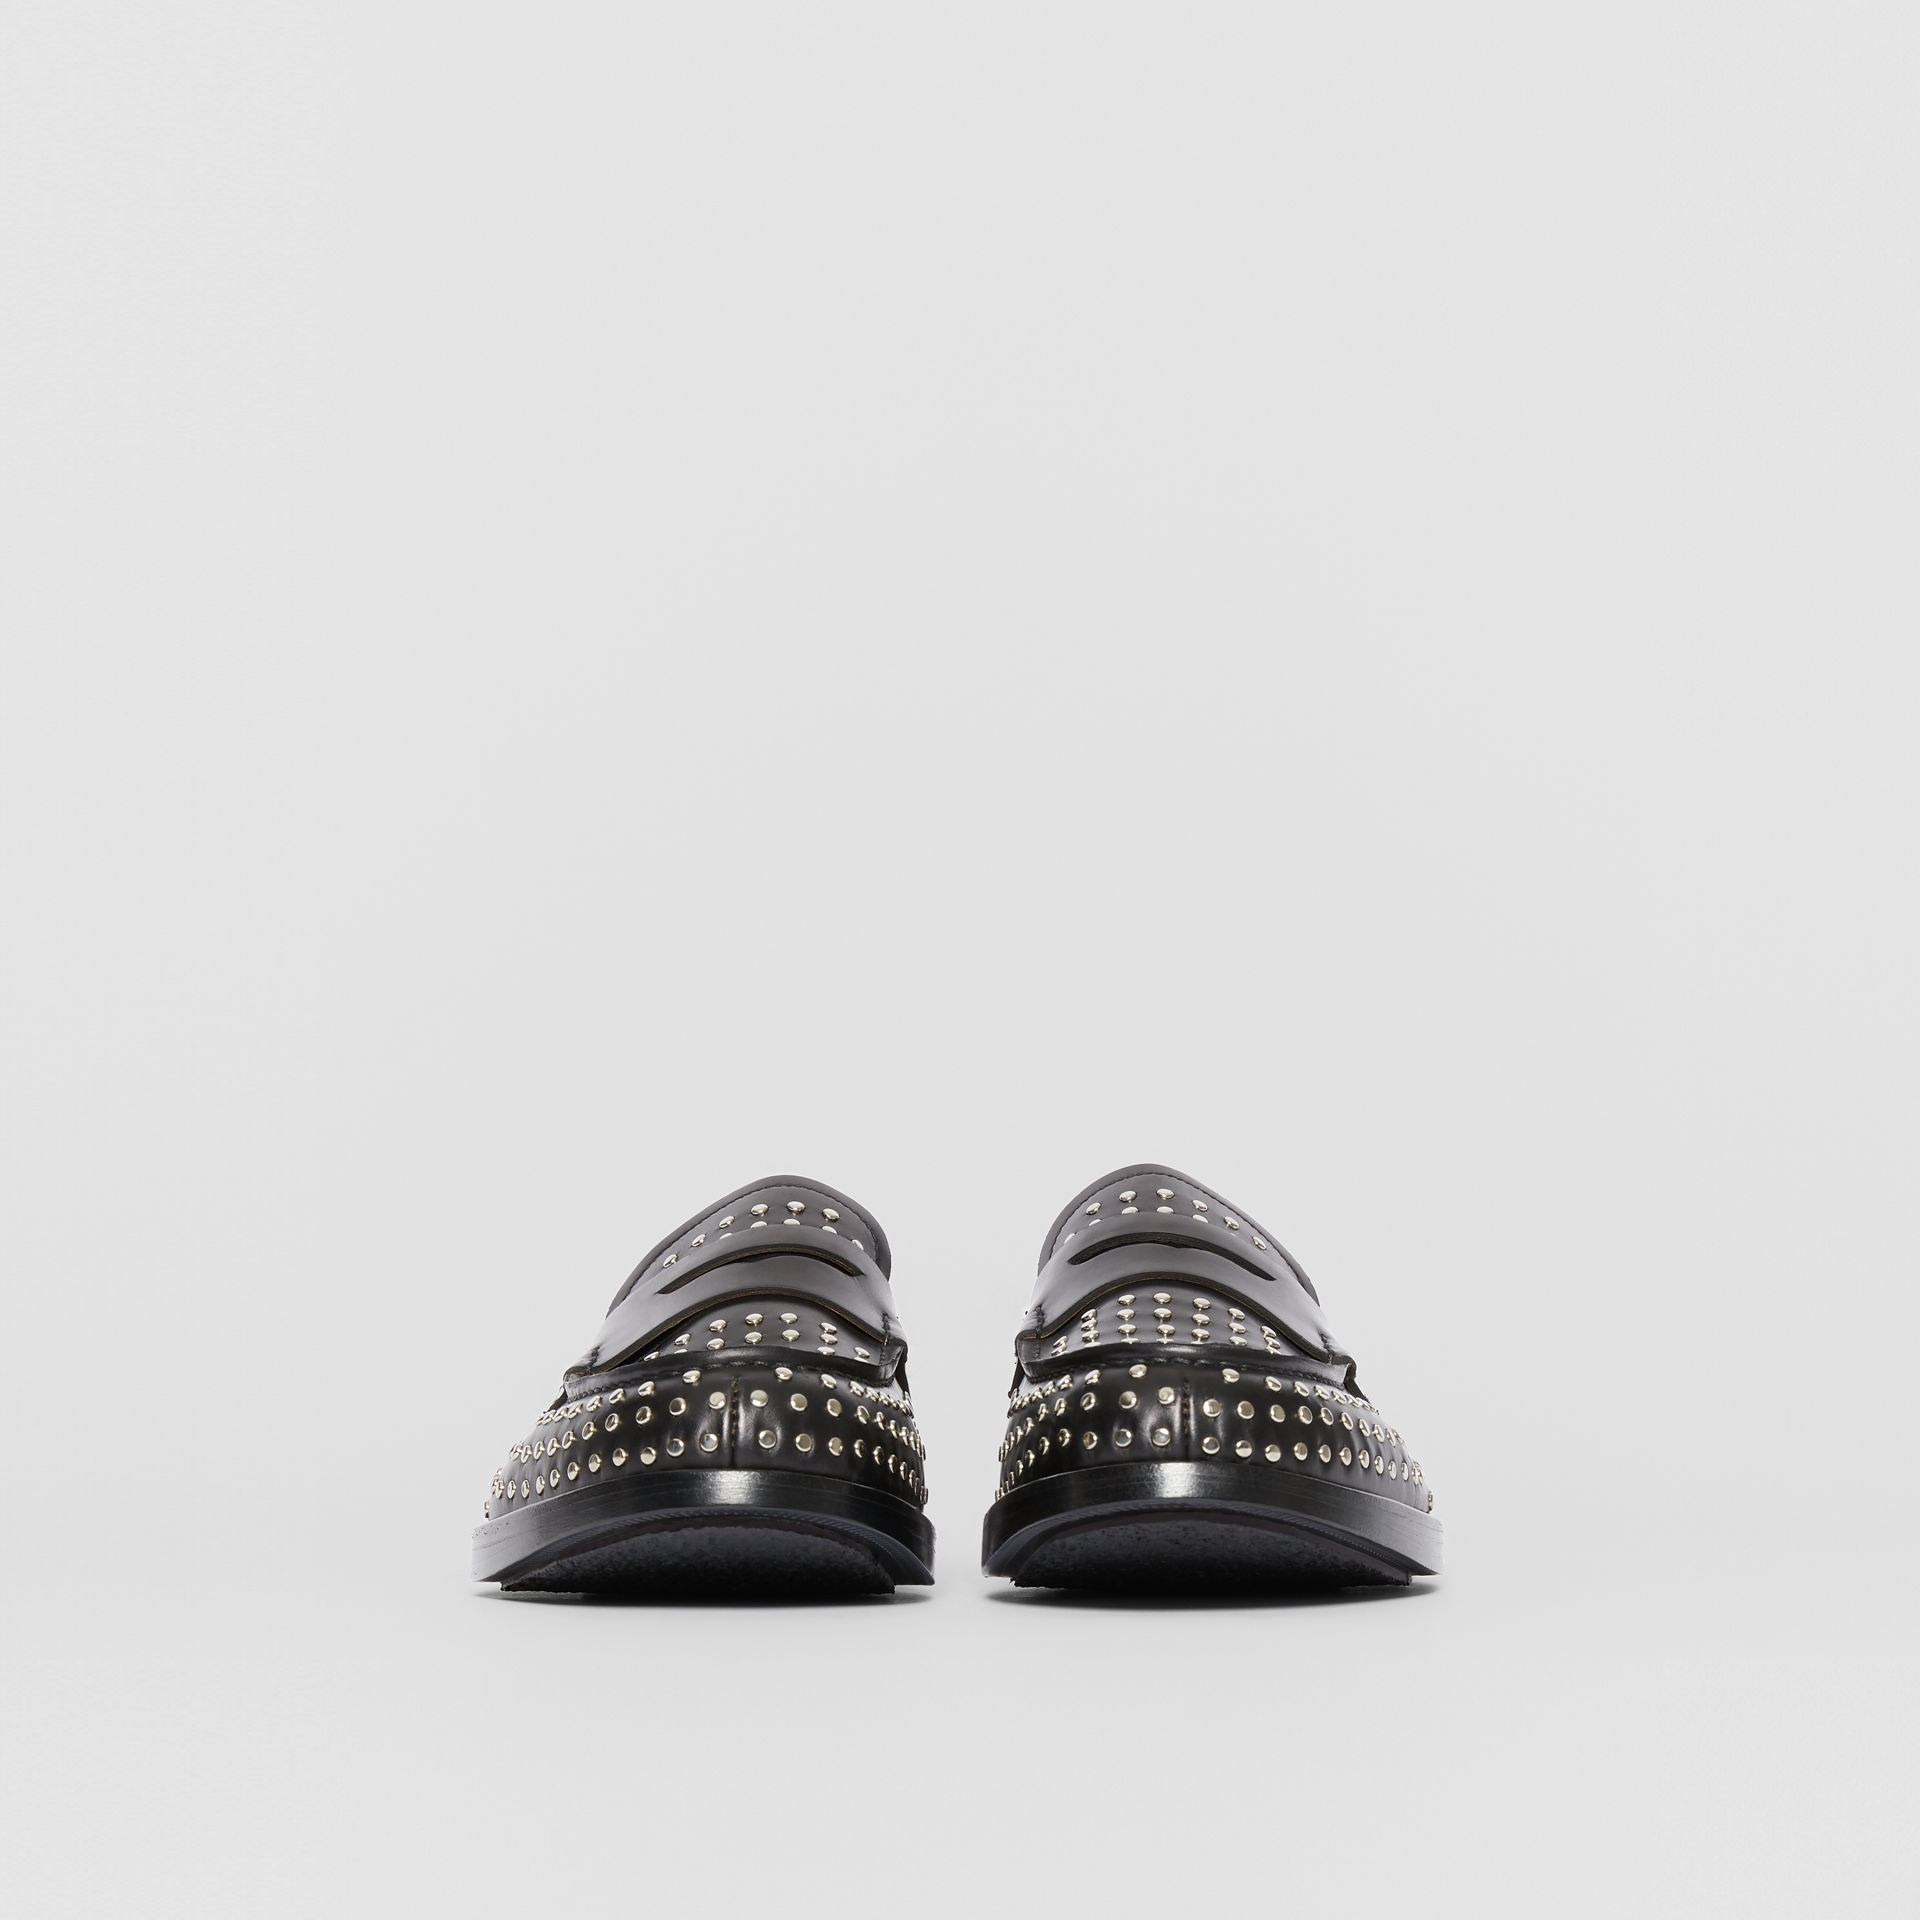 D-ring Detail Studded Leather Loafers in Black - Men | Burberry - gallery image 3